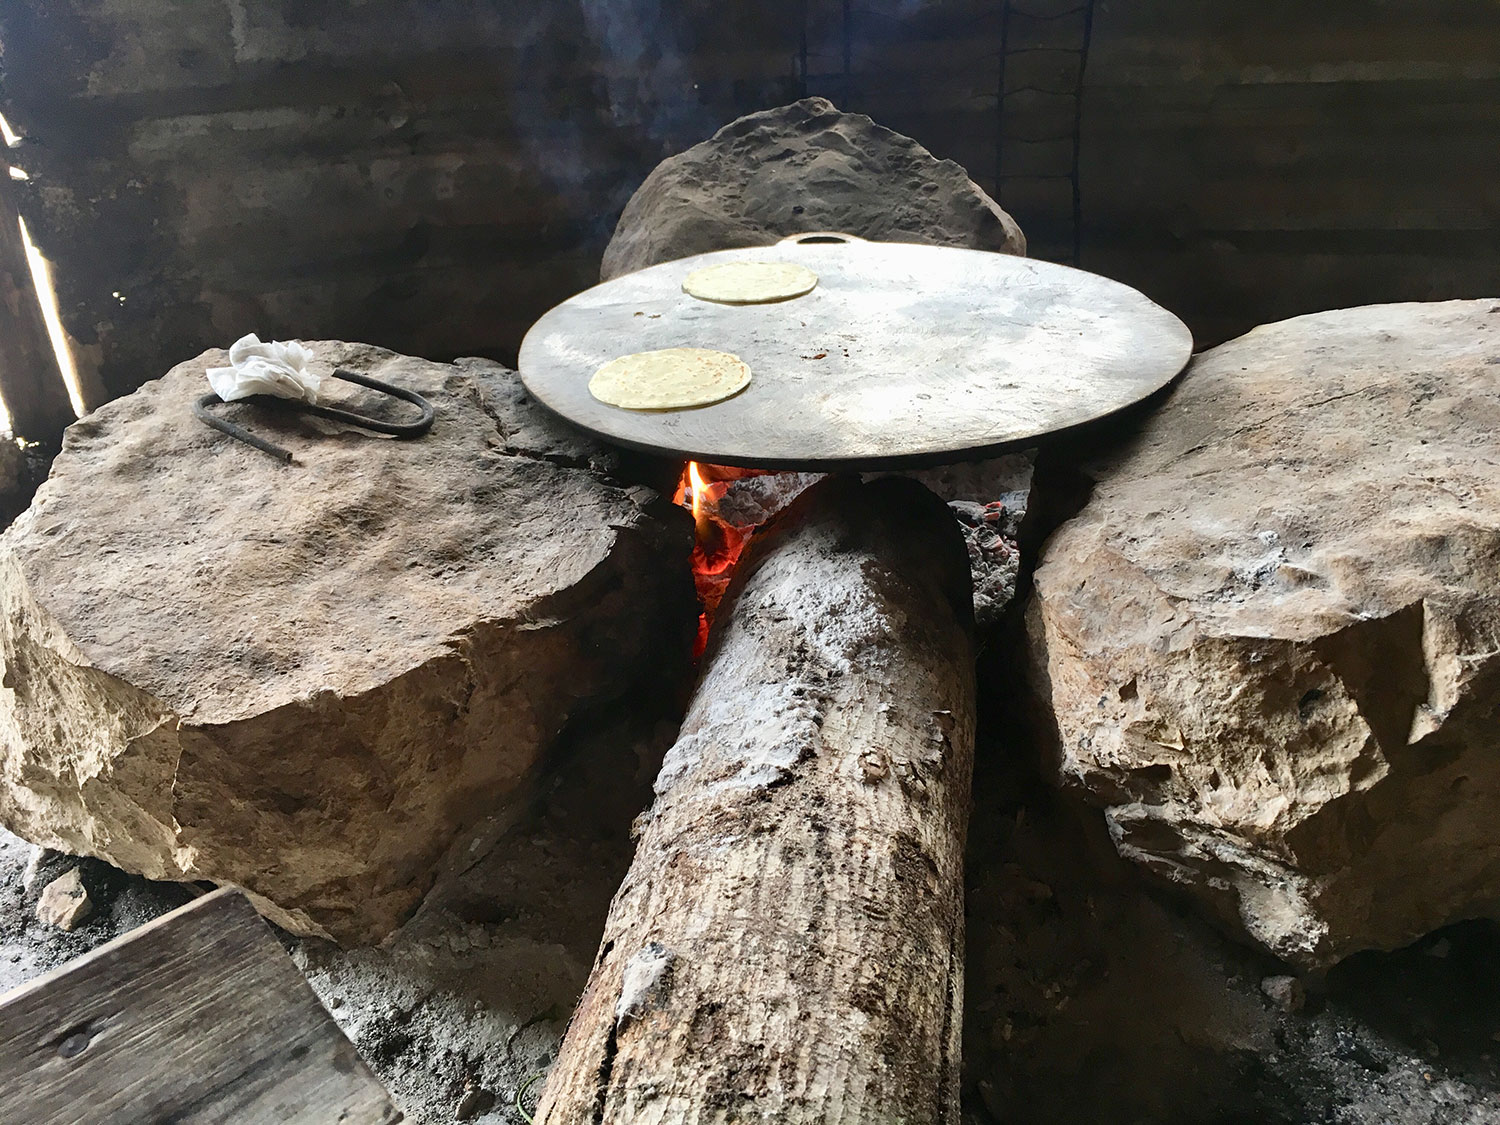 The hearth made of three stones and a  comal .